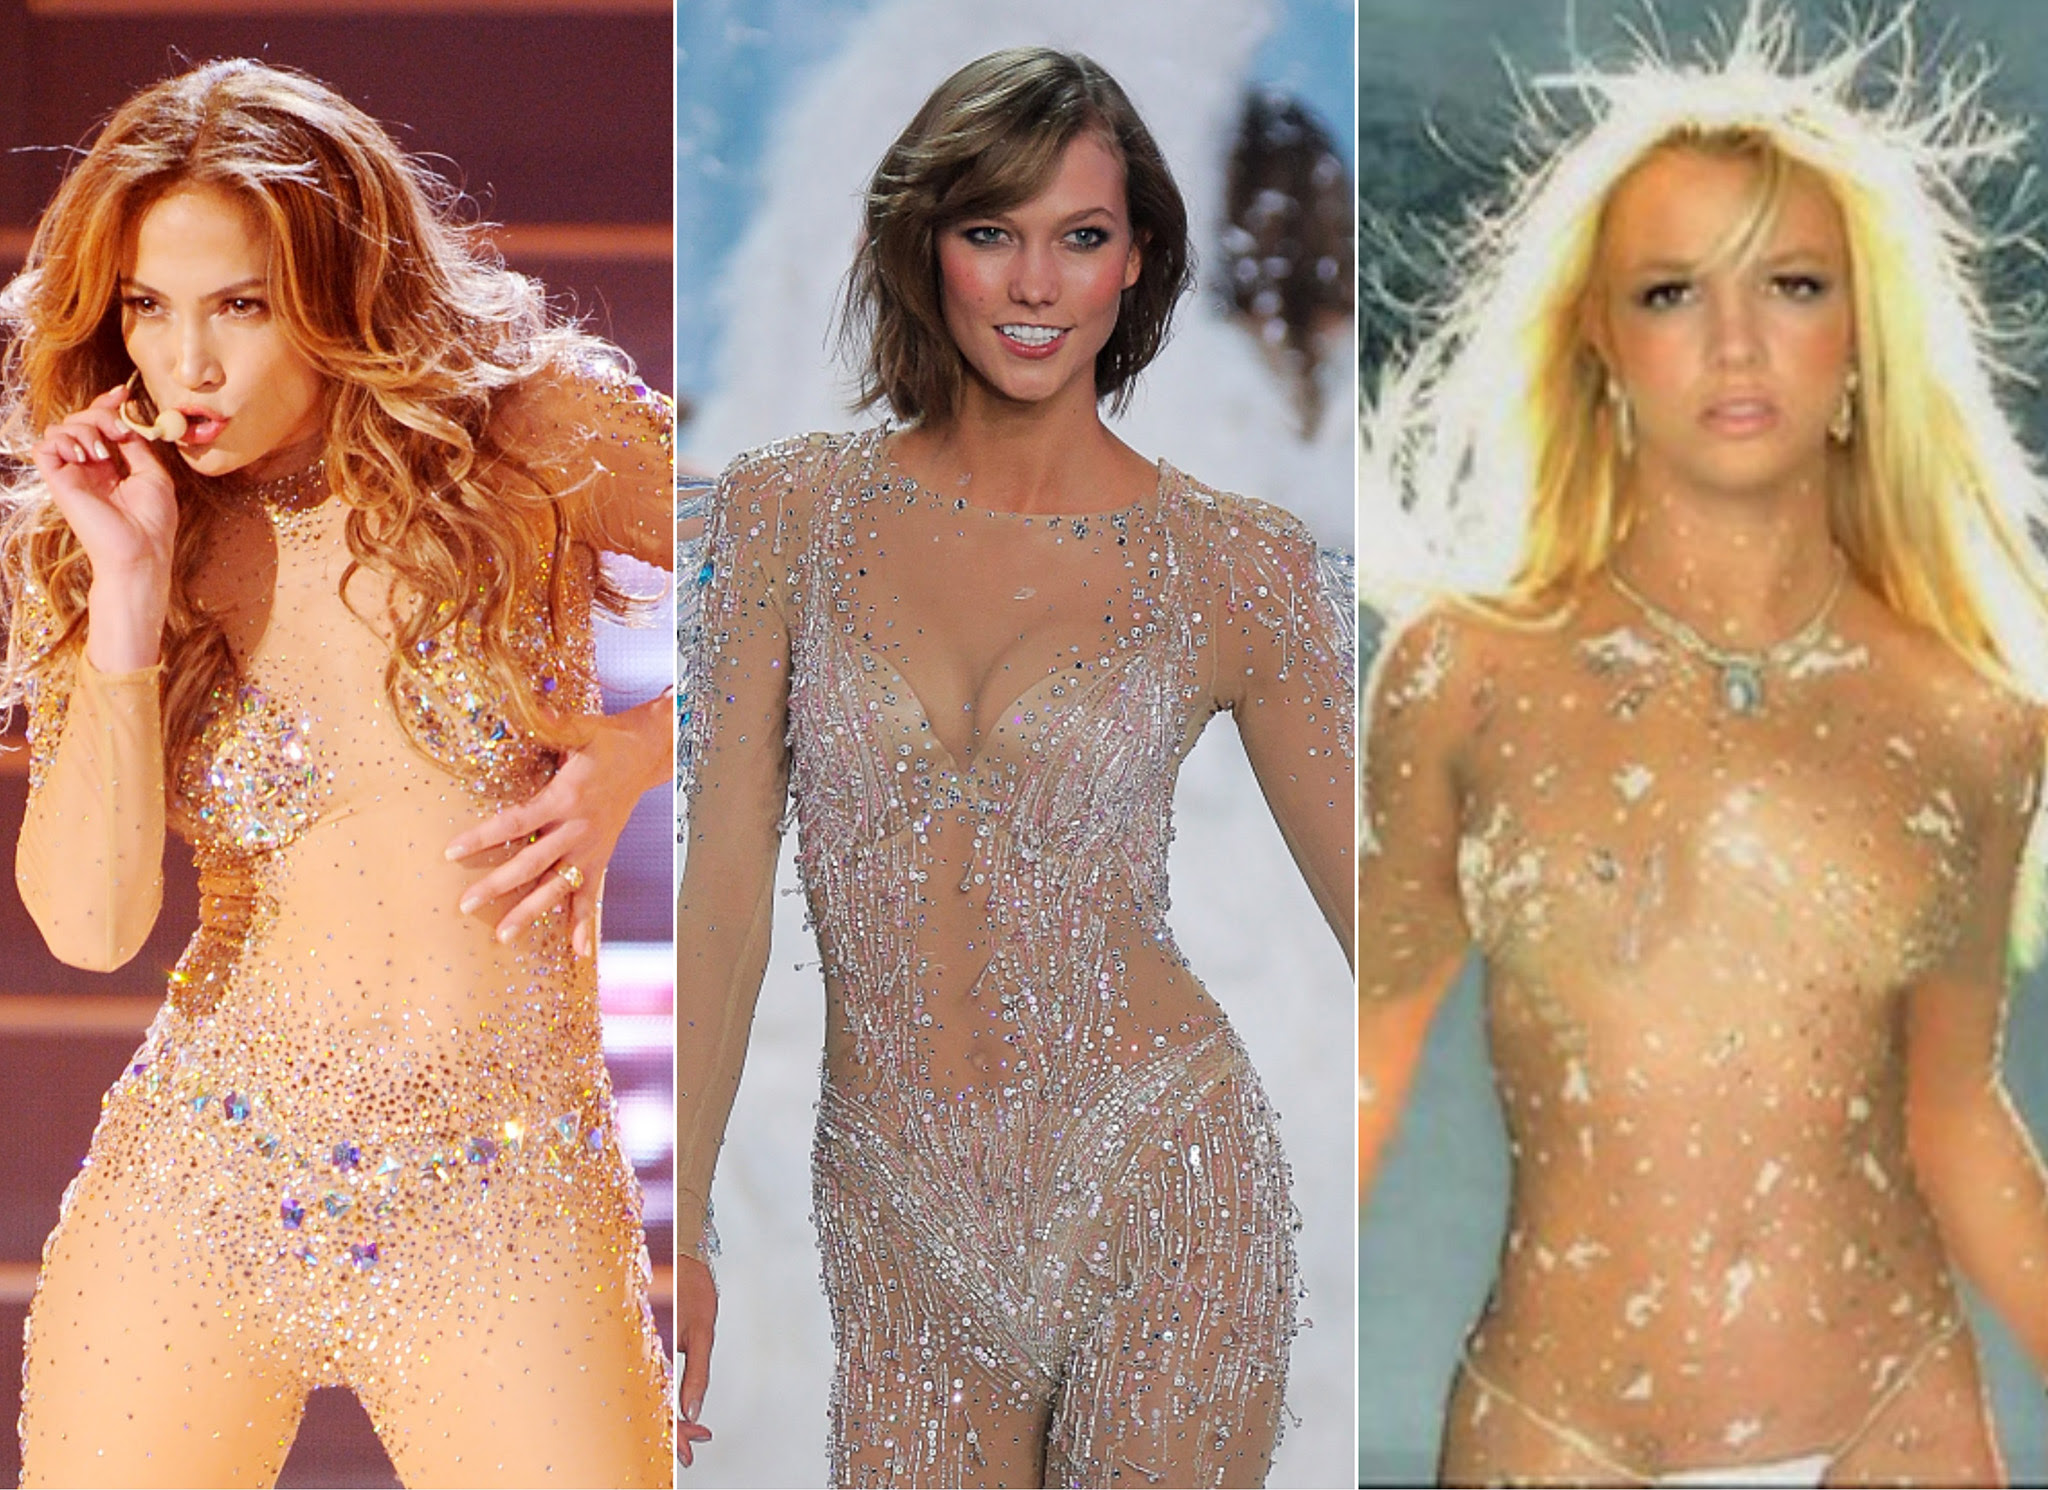 Fashion Faceoff: Karlie Kloss vs. J.Lo vs. Britney Spears